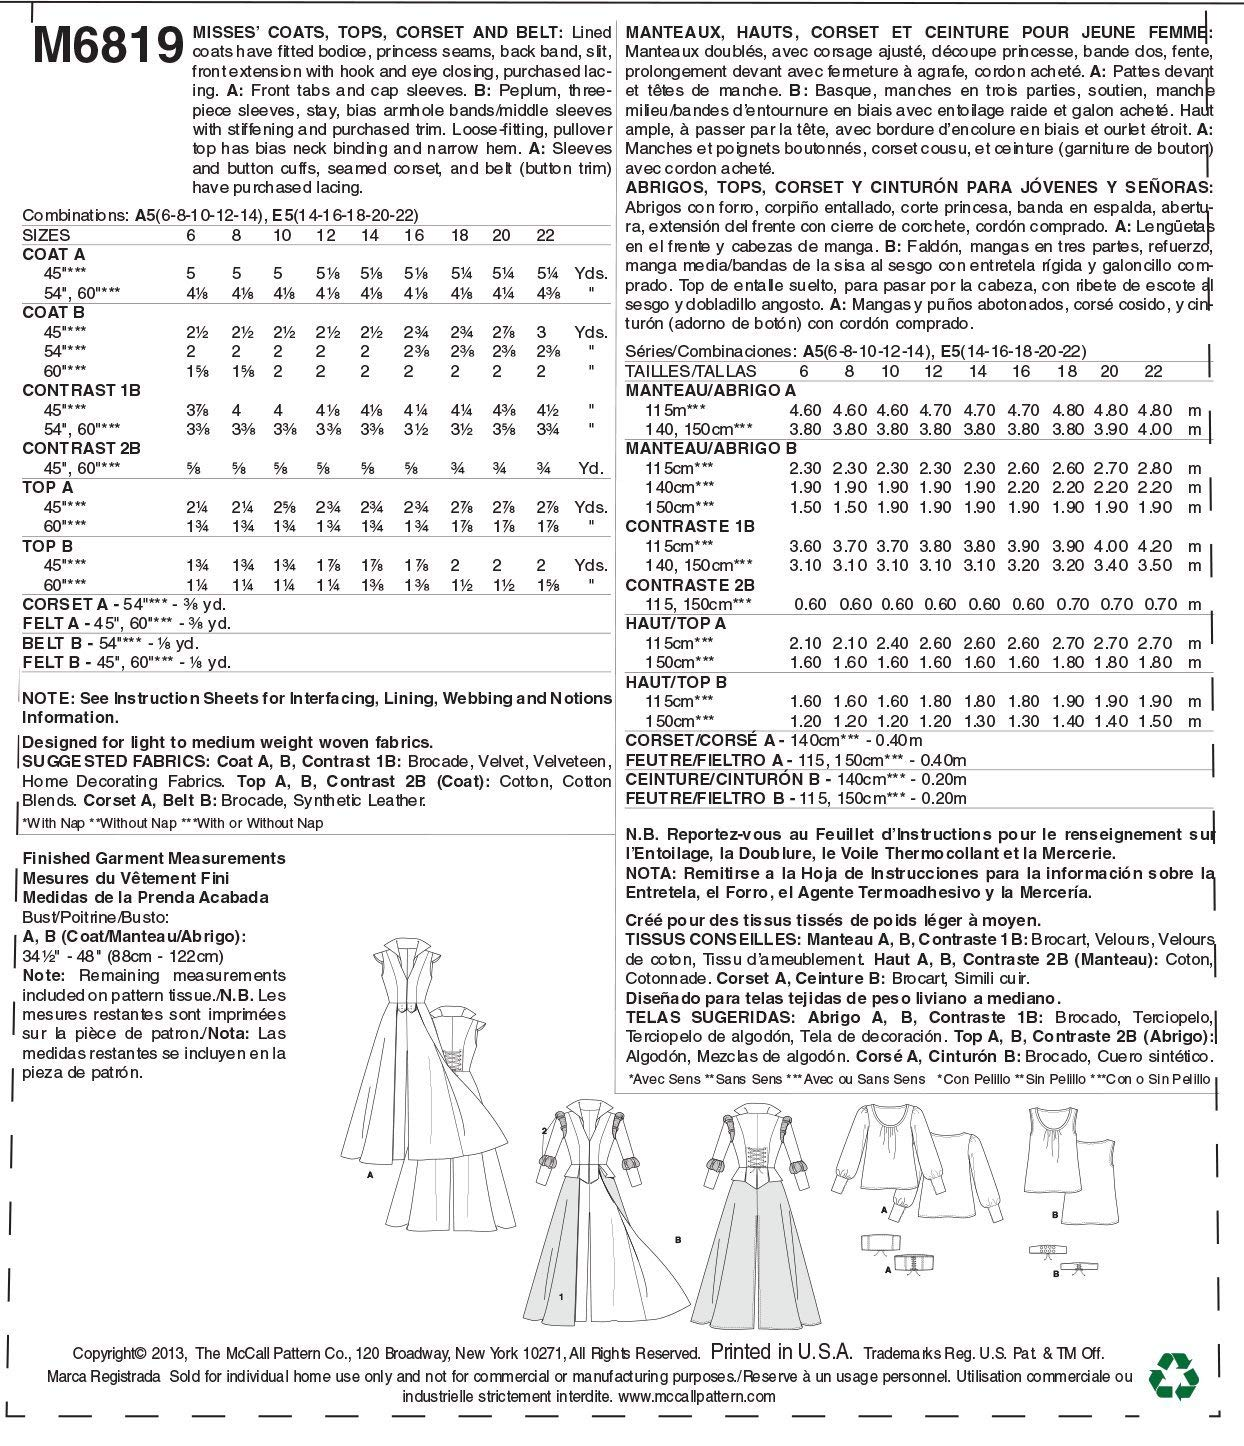 Amazon.com: McCall Pattern Company M6819 Misses Costumes Sewing Template, Size A5 (6-8-10-12-14): Arts, Crafts & Sewing